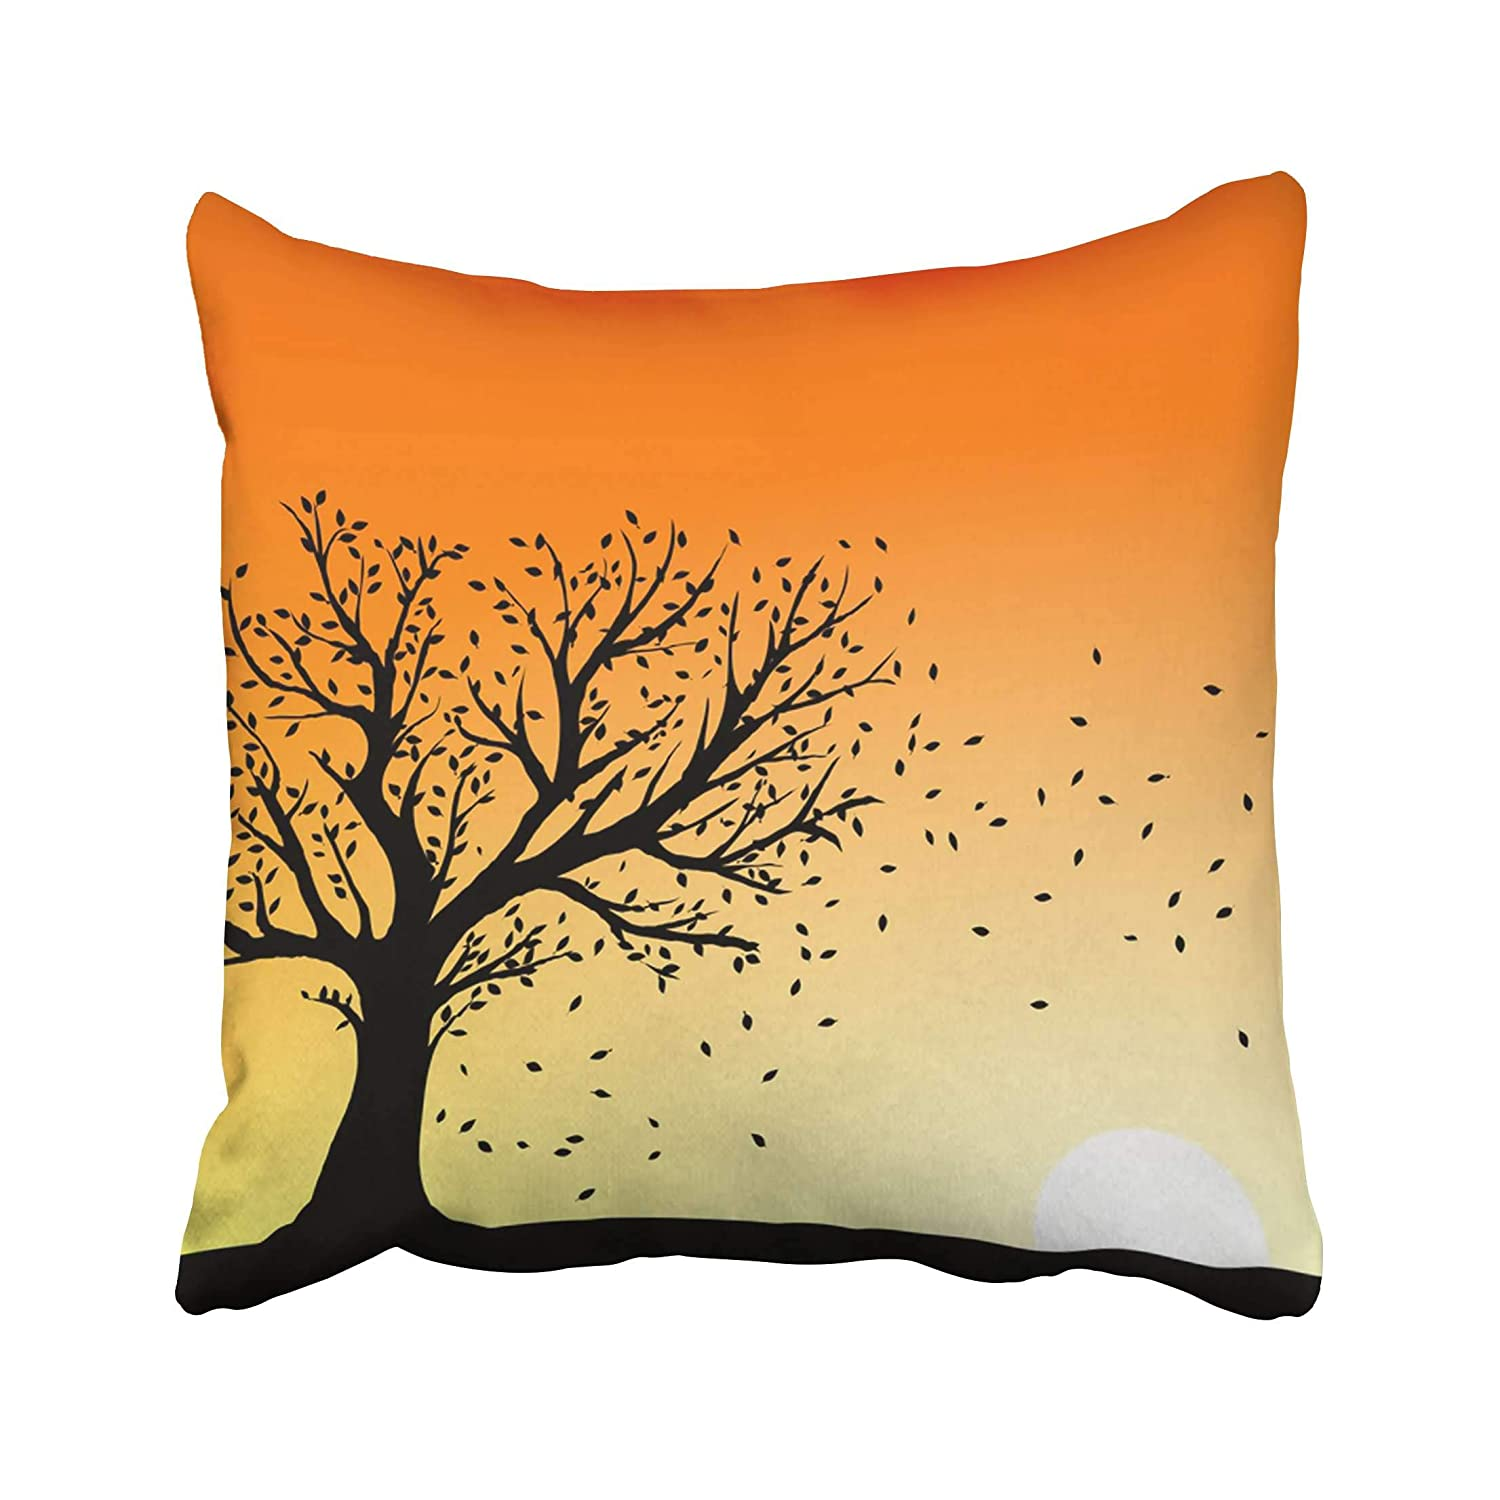 Emvency Orange Leaf Autumn Tree Silhouette In Sunset Wind Blowing Away The  Falling Leaves Sky Fall Graphic Season Throw Pillow Covers 18x18 Inch  Decorative ...